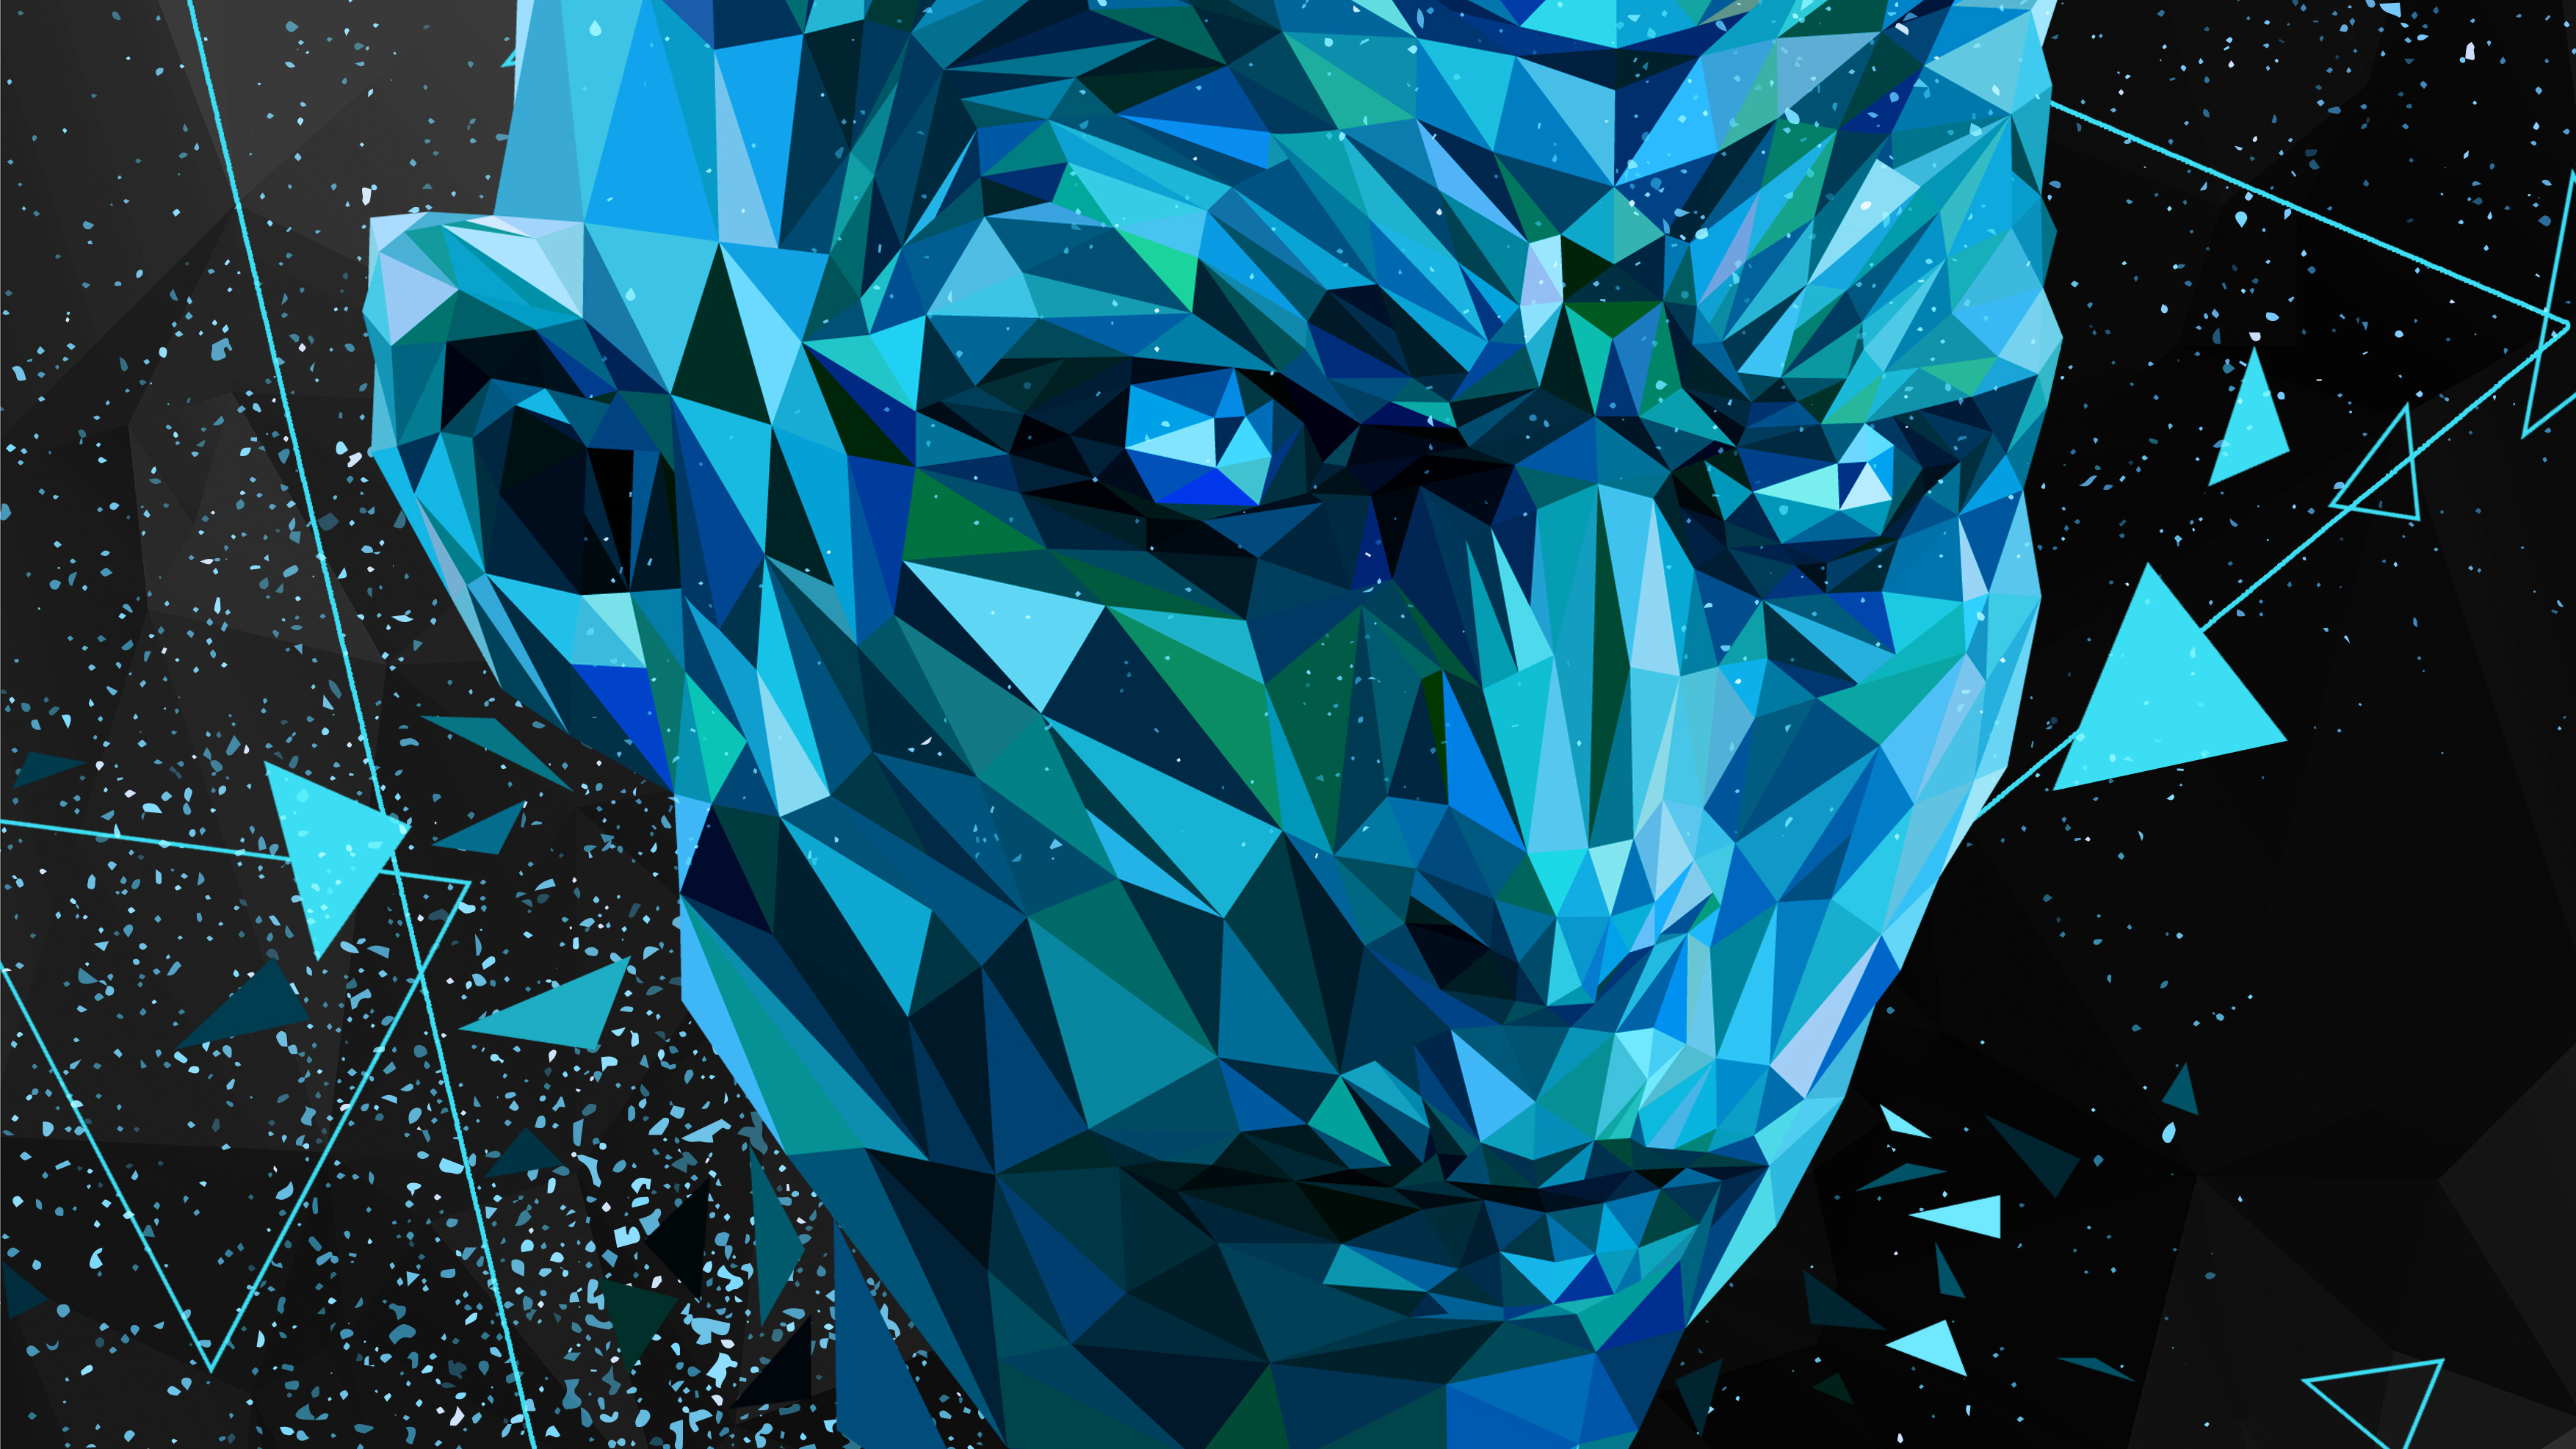 720x1280 Night King Low Poly Art Moto G,X Xperia Z1,Z3